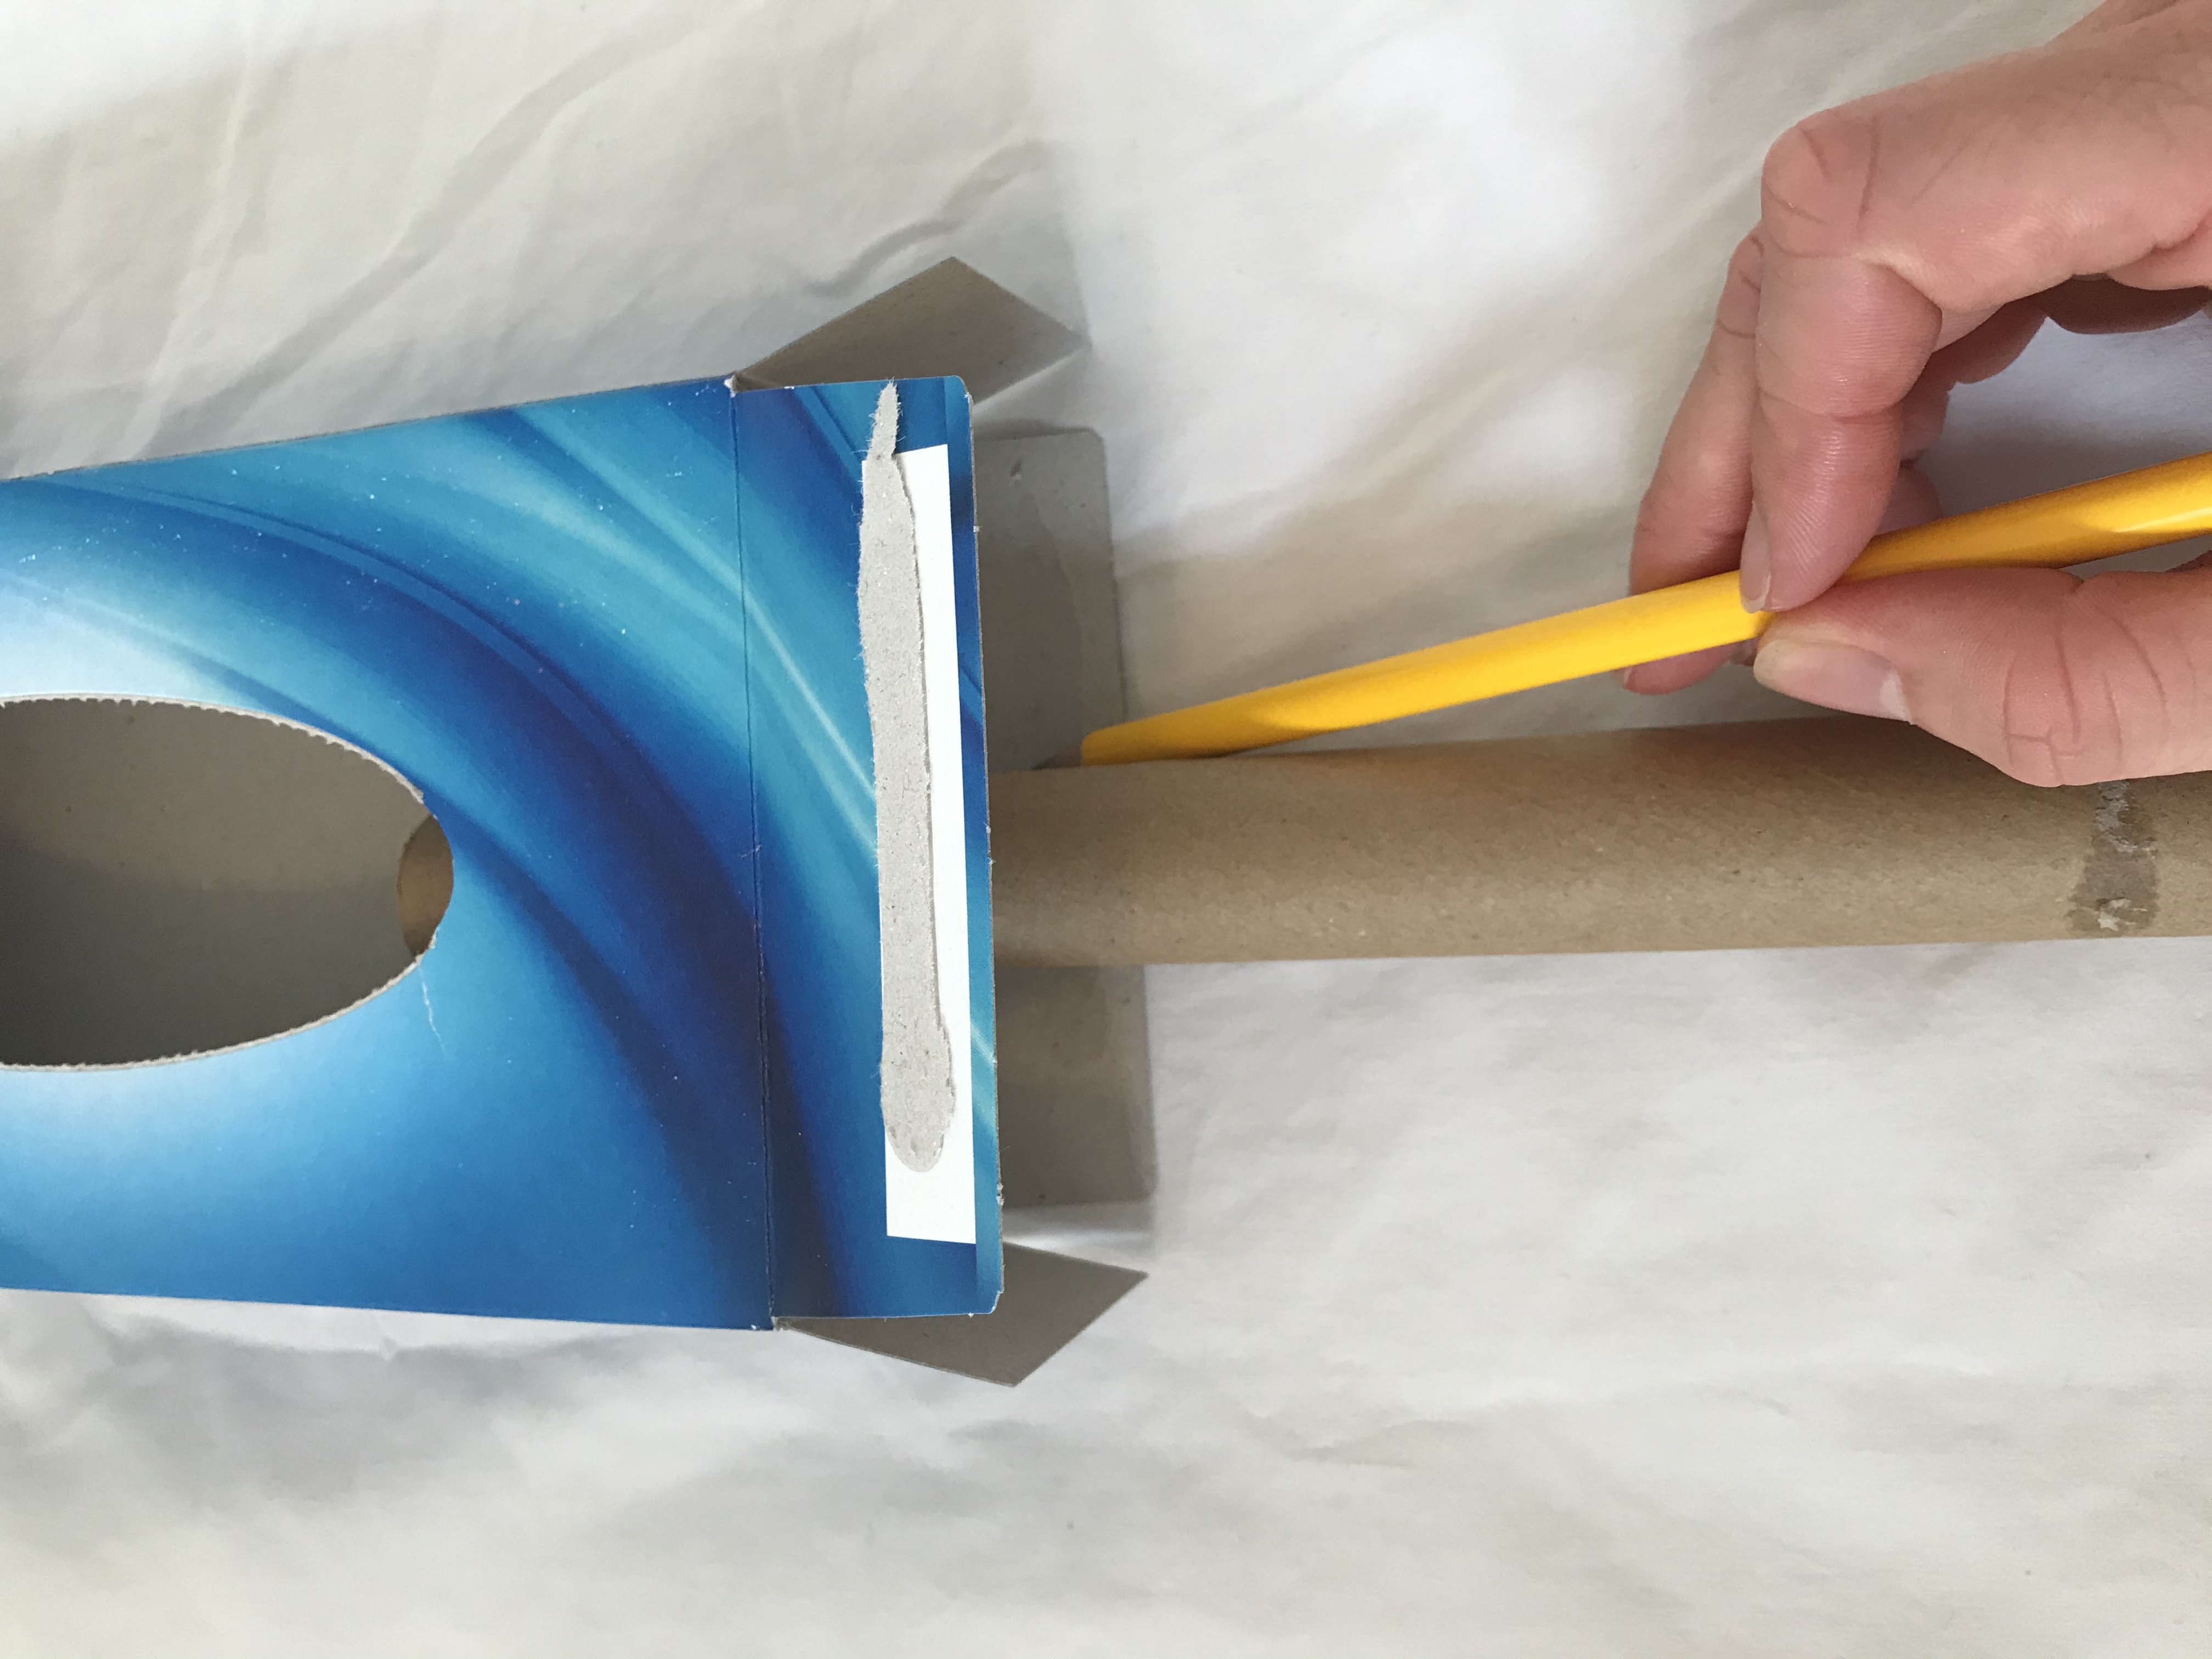 A cardboard tube is placed inside a tissue box. Someone is marking on the end of the box where the tube is.